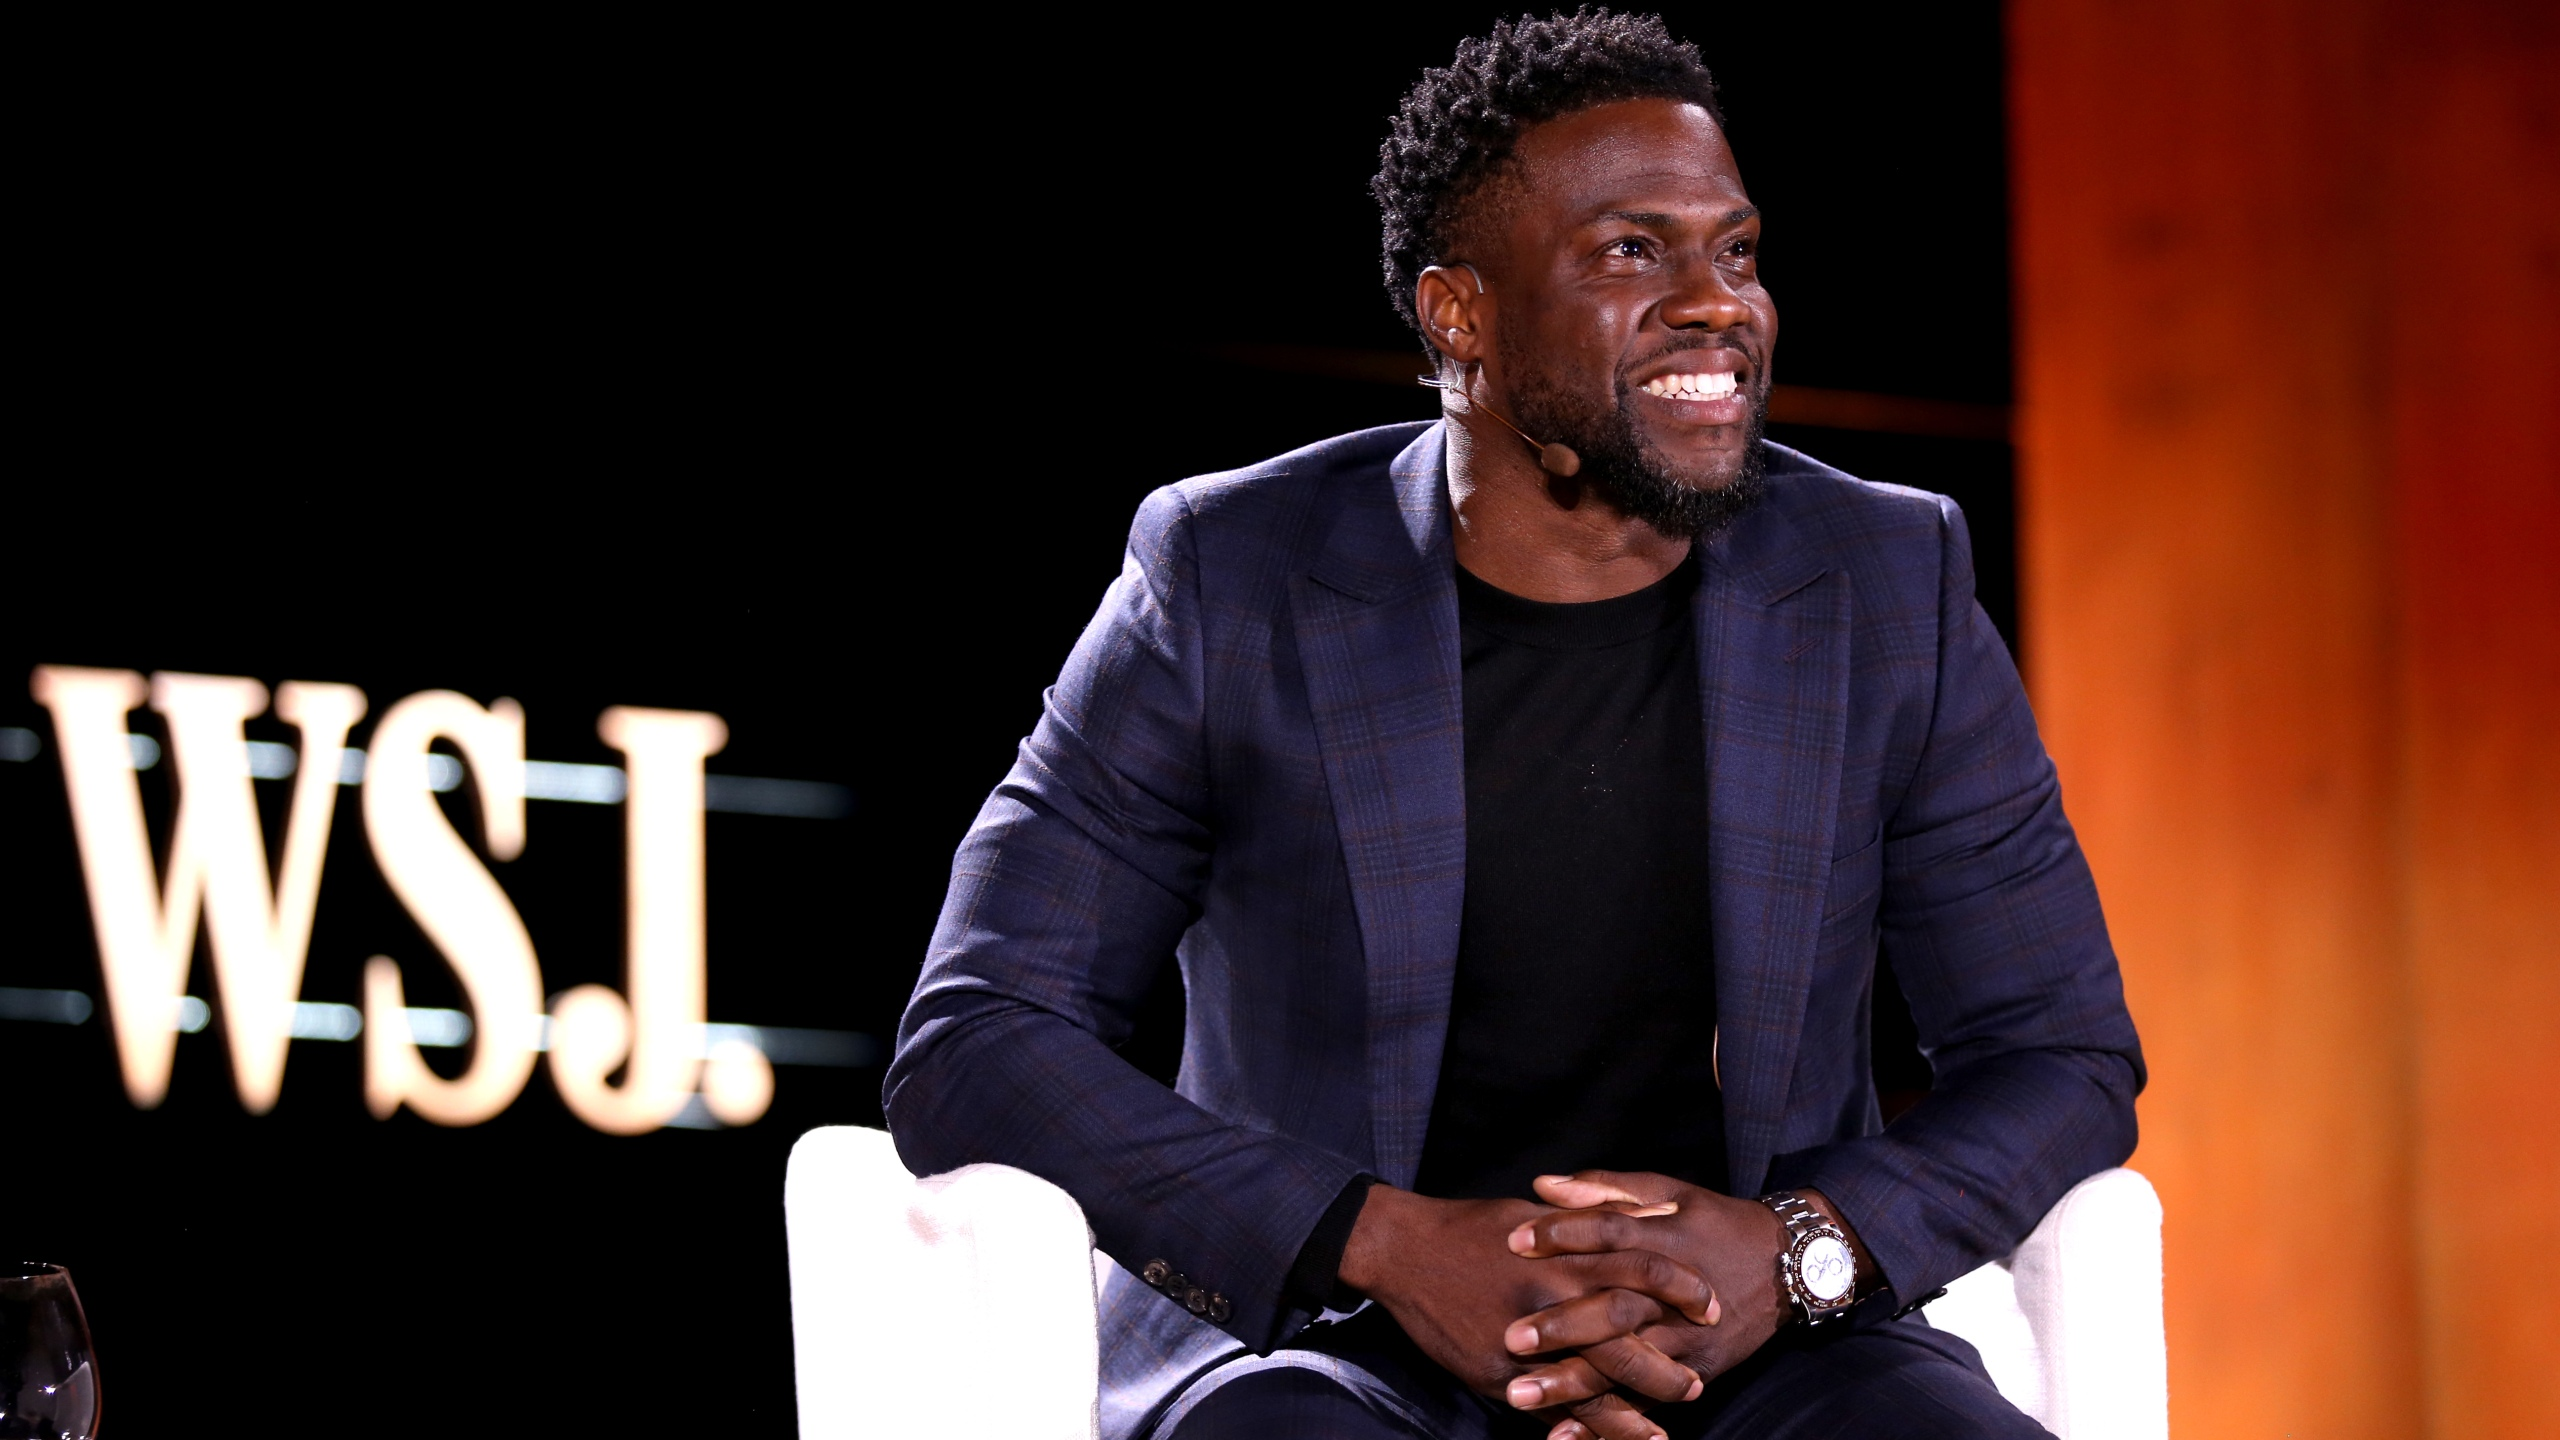 Kevin Hart attends the WSJ Tech D.Live at Montage Laguna Beach on November 13, 2018 in Laguna Beach. (Credit: Phillip Faraone/Getty Images for The Wall Street Journal and WSJ. Magazine)